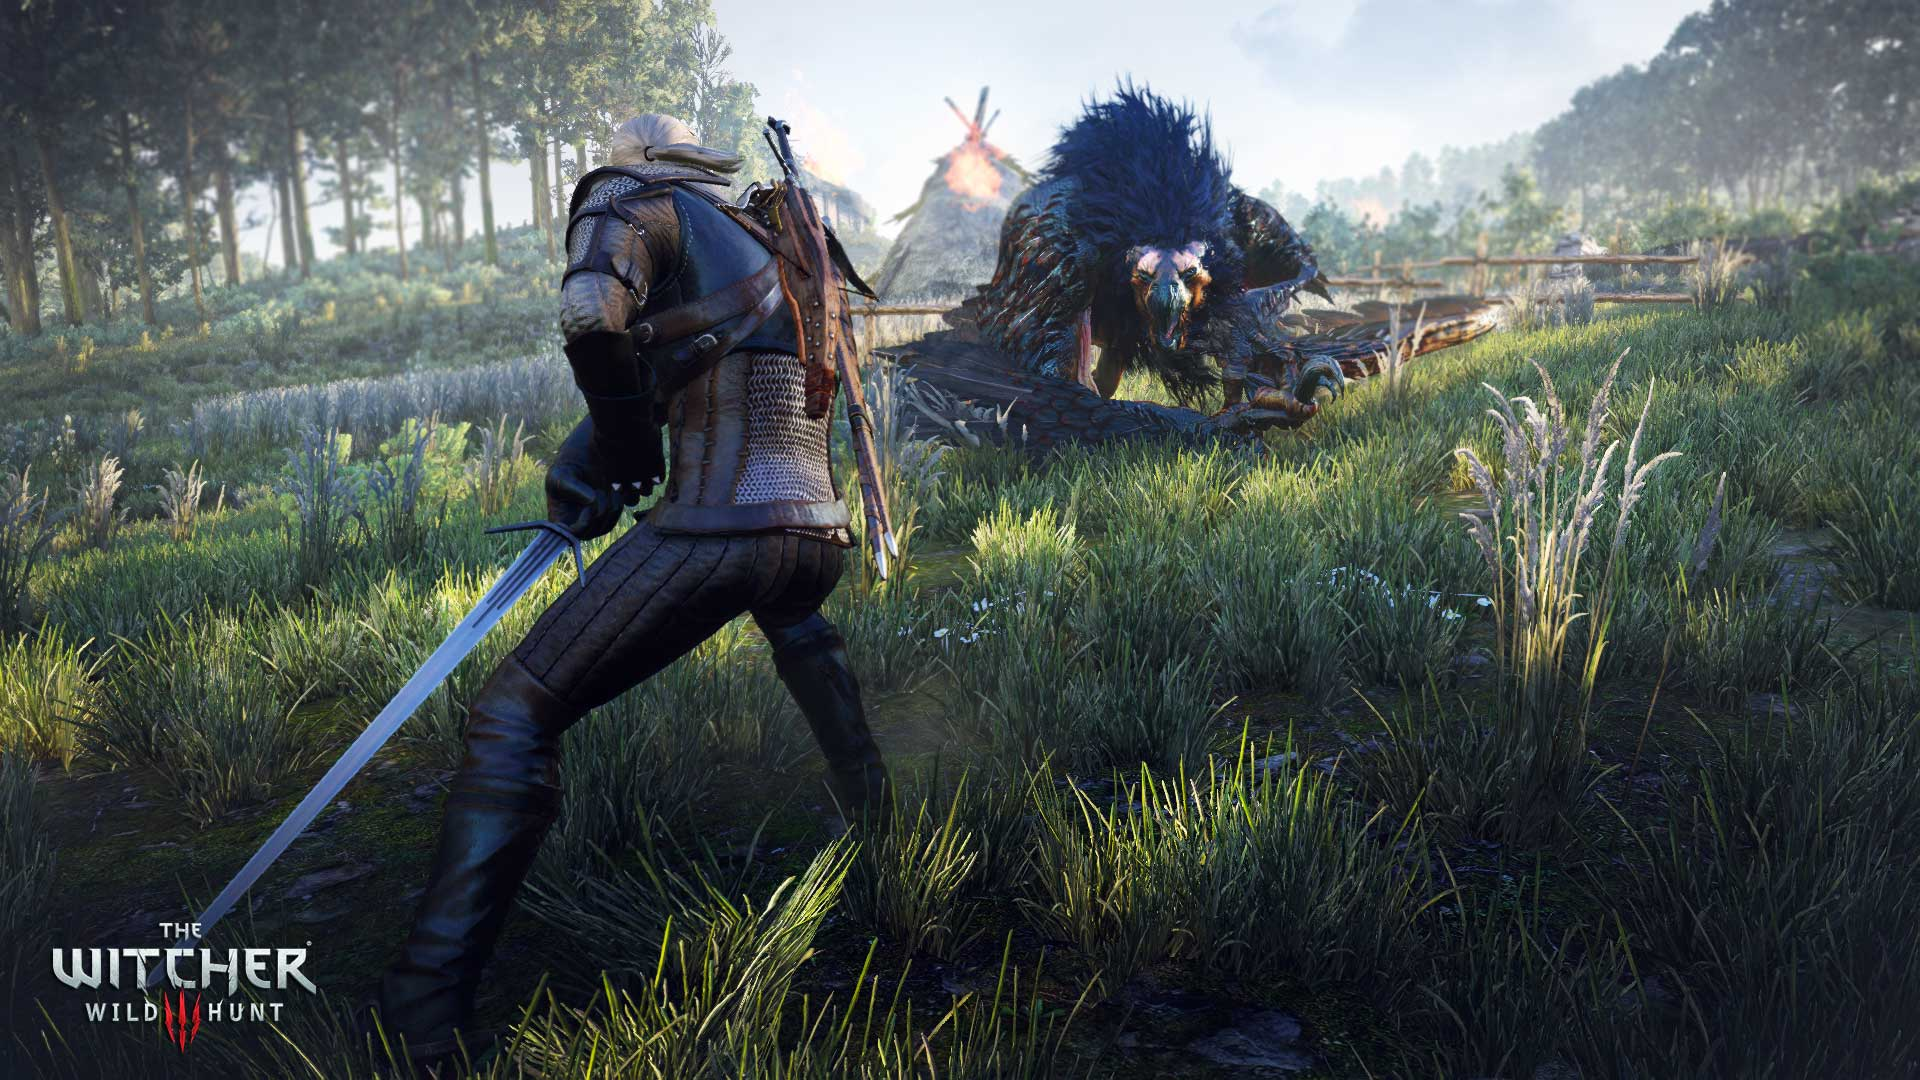 The Witcher 3: Wild Hunt - to simulate or not to simulate a